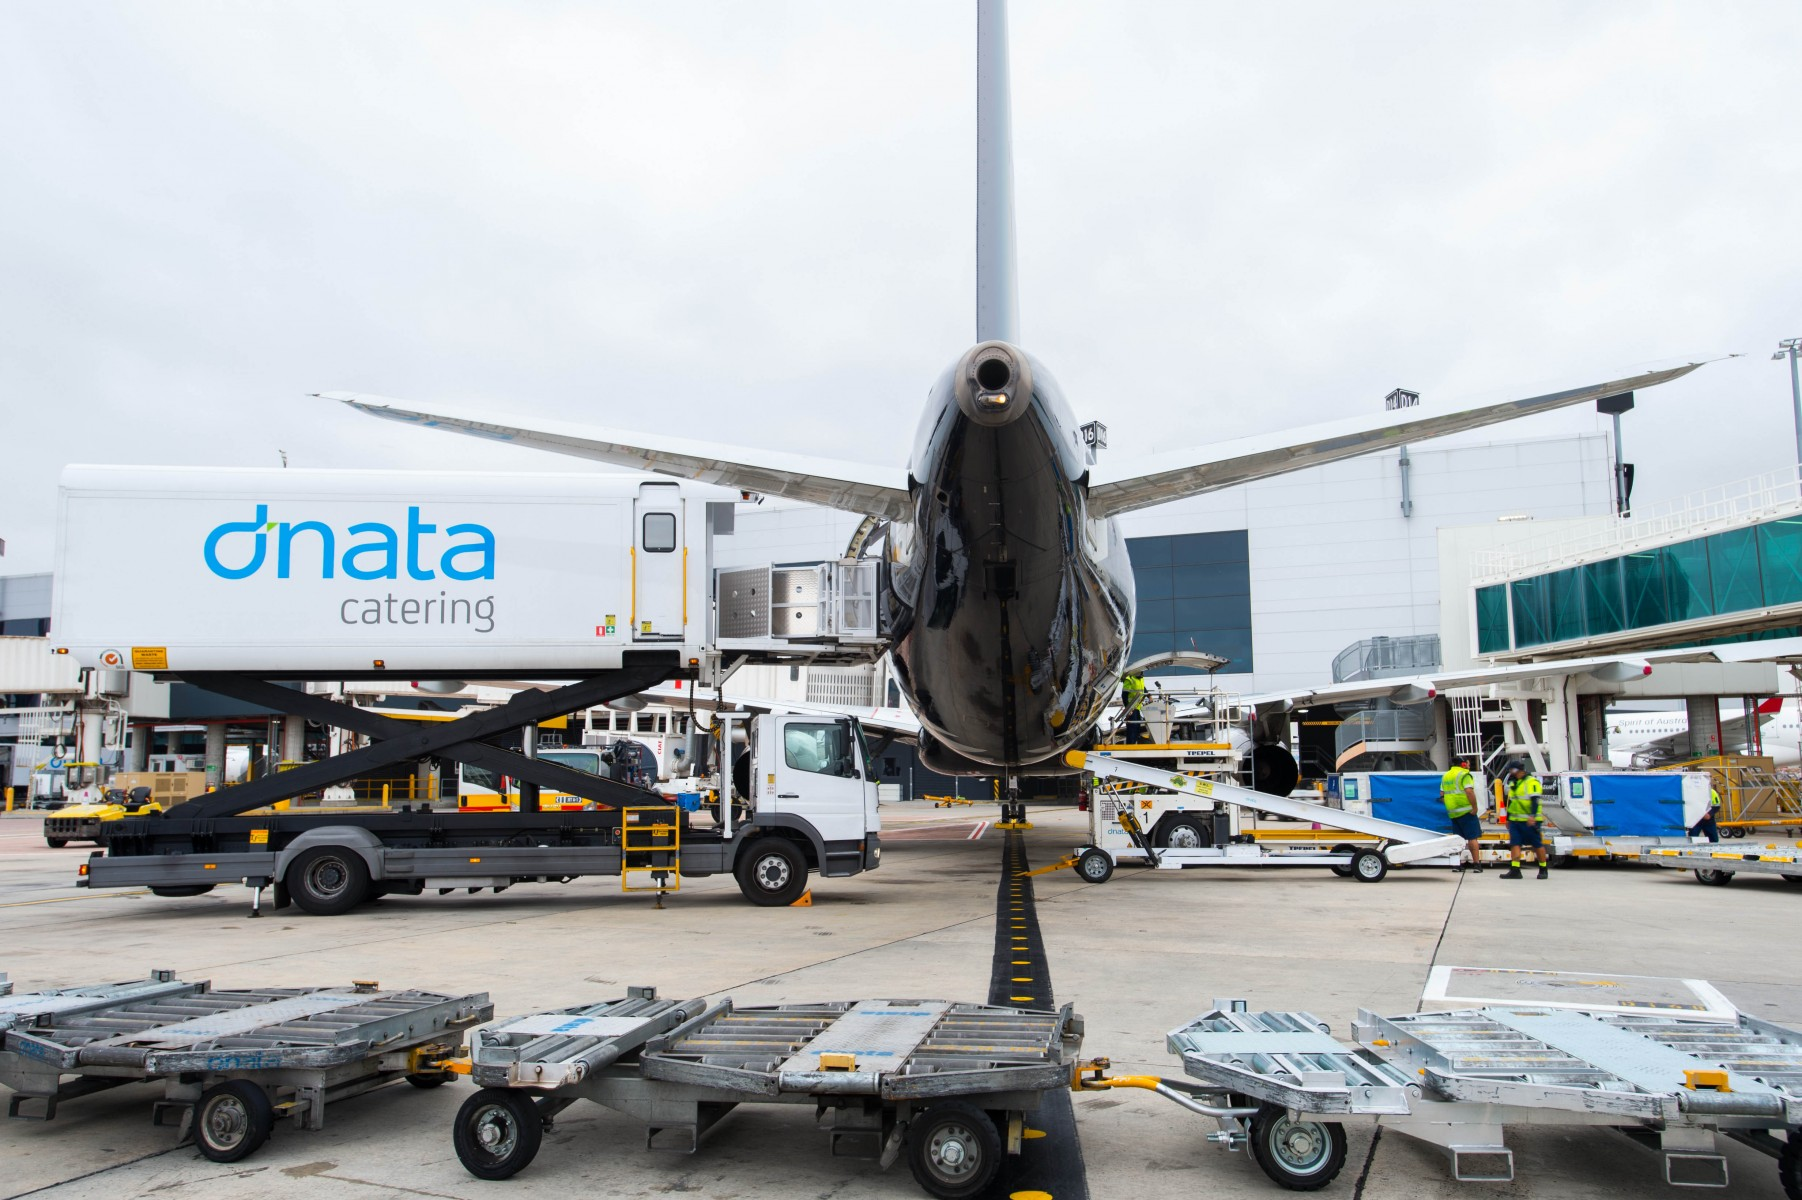 dnata expands global catering operations